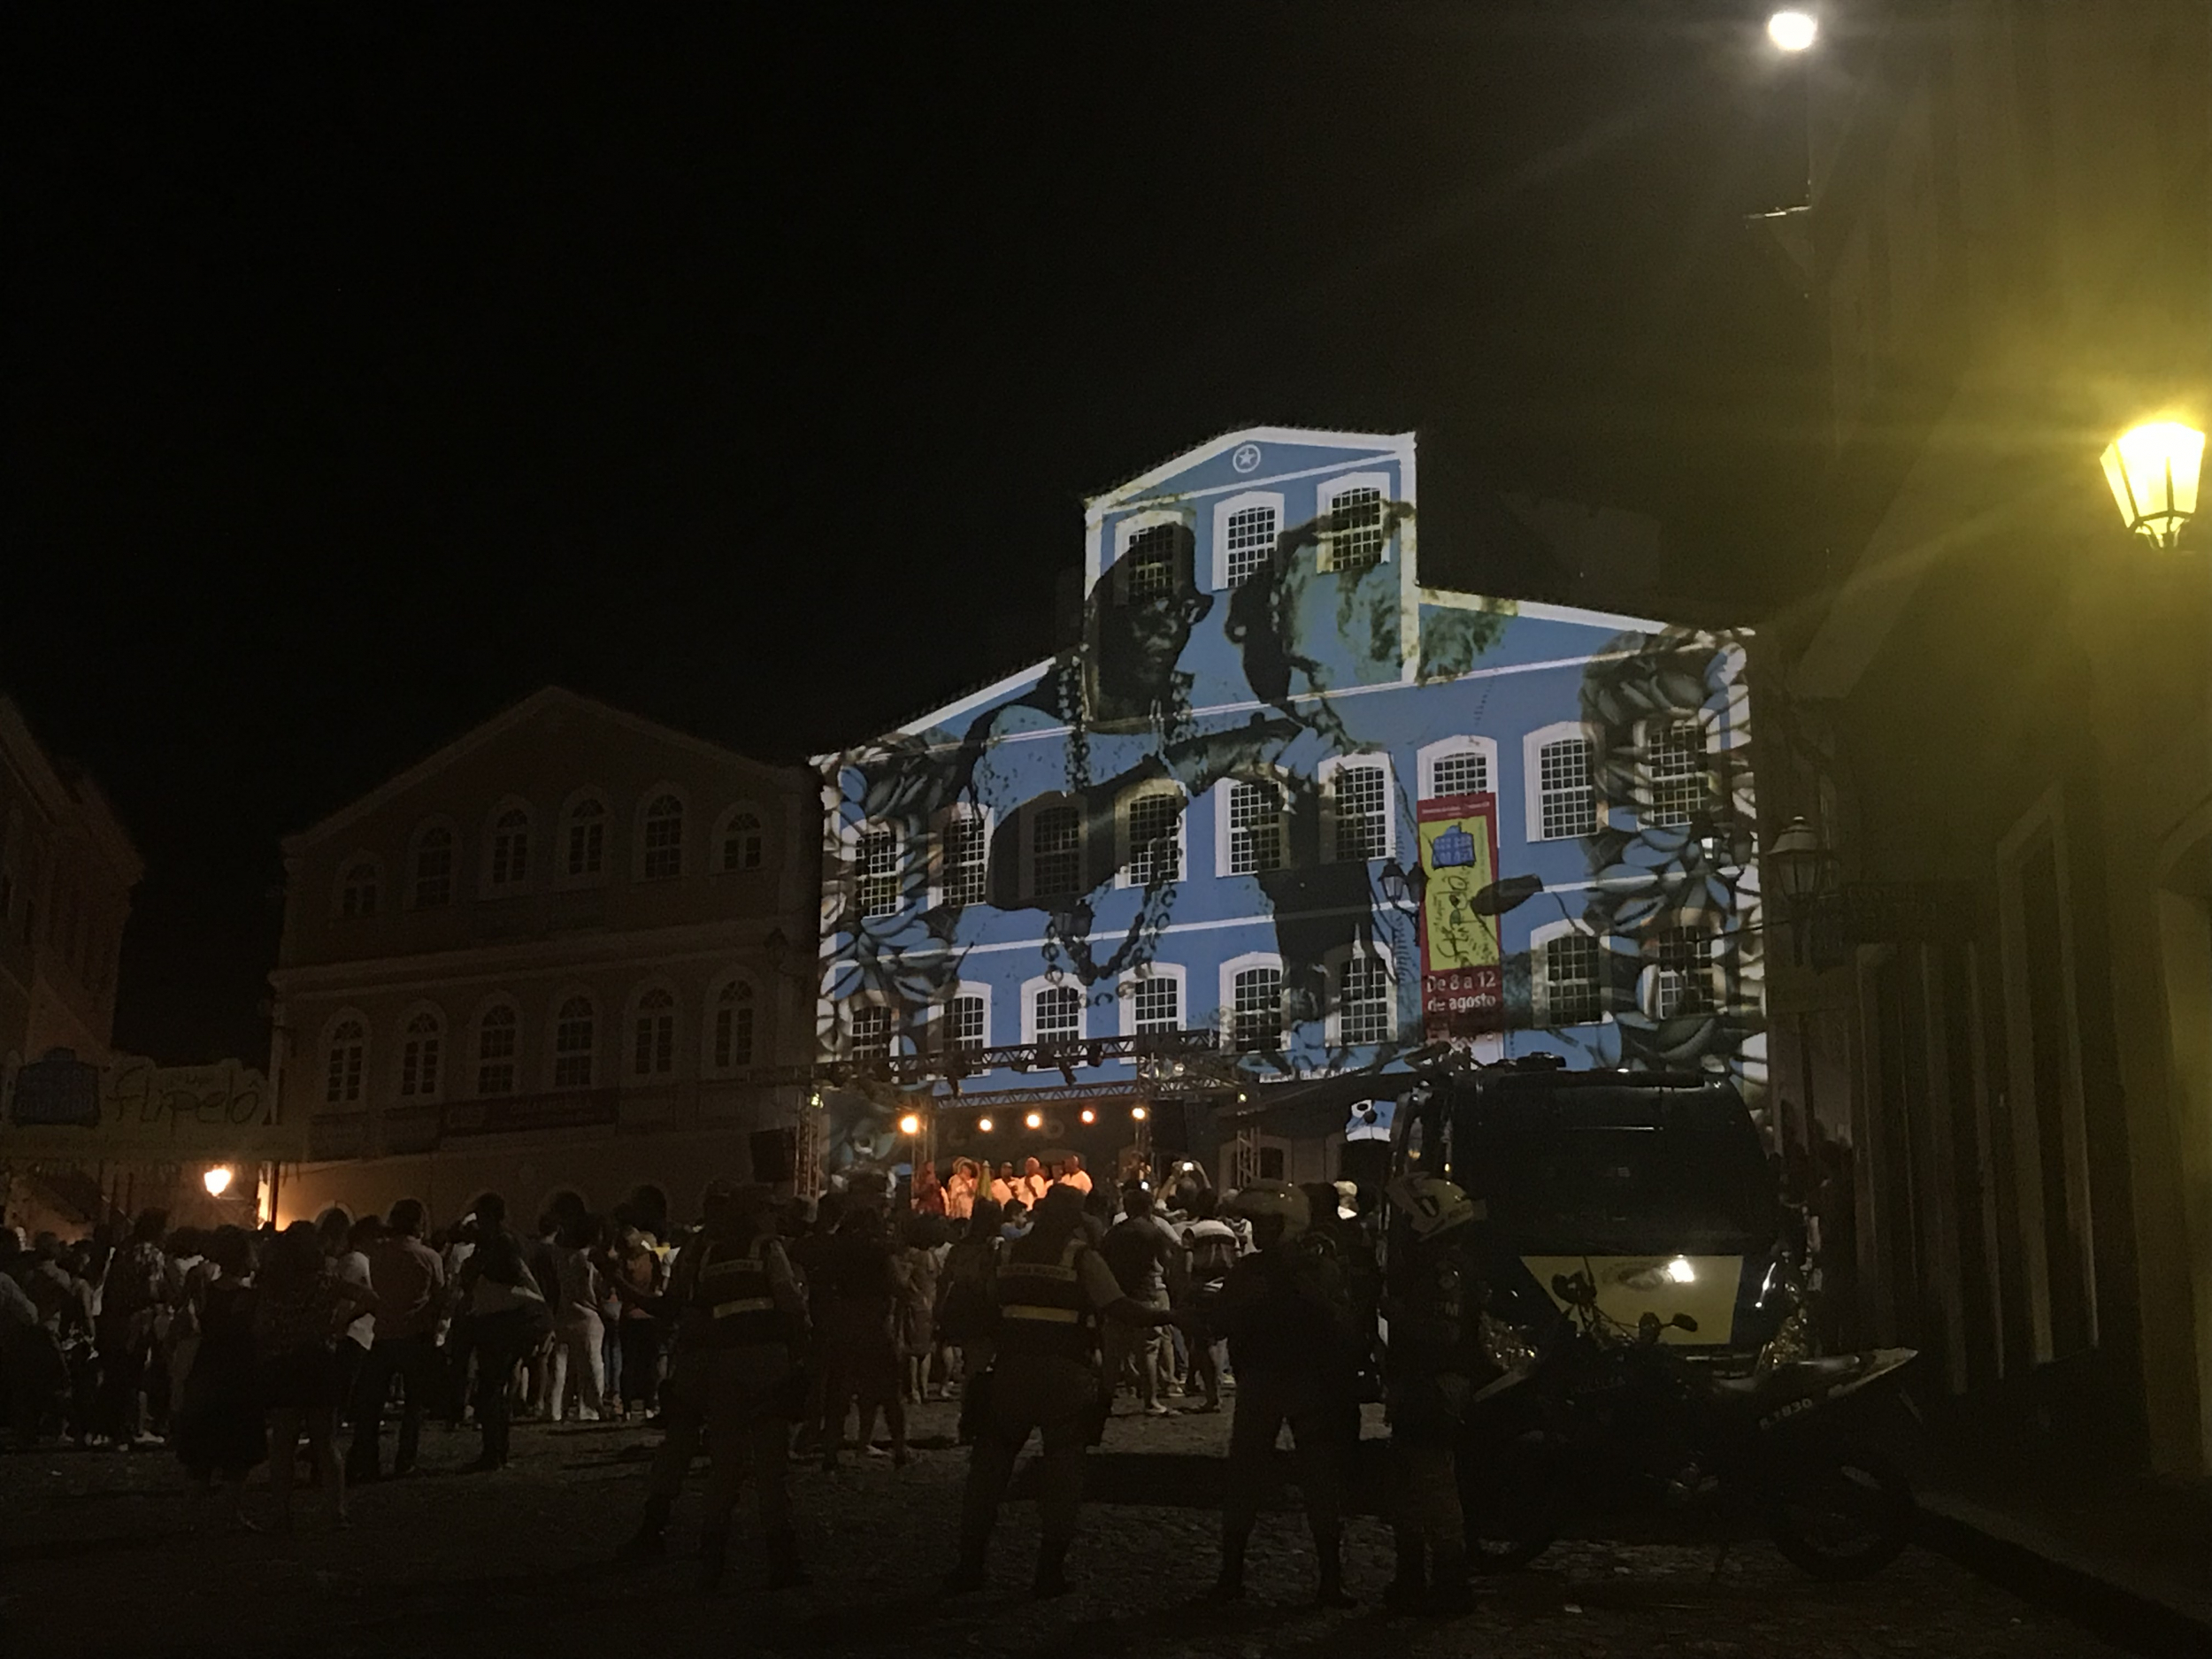 23. Concert in the square